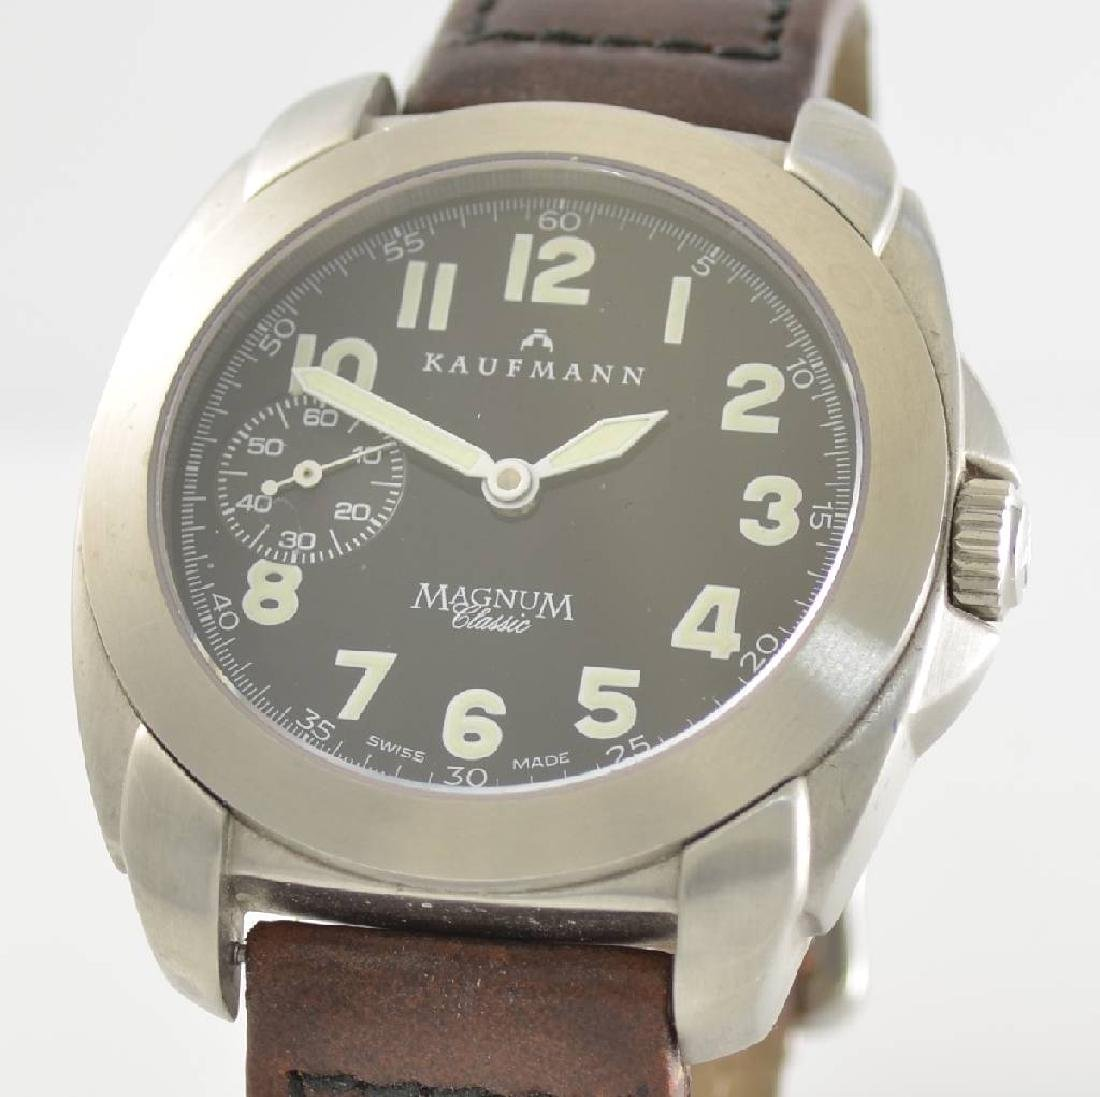 KAUFMANN manual wound gents wristwatch model Magnum - 4